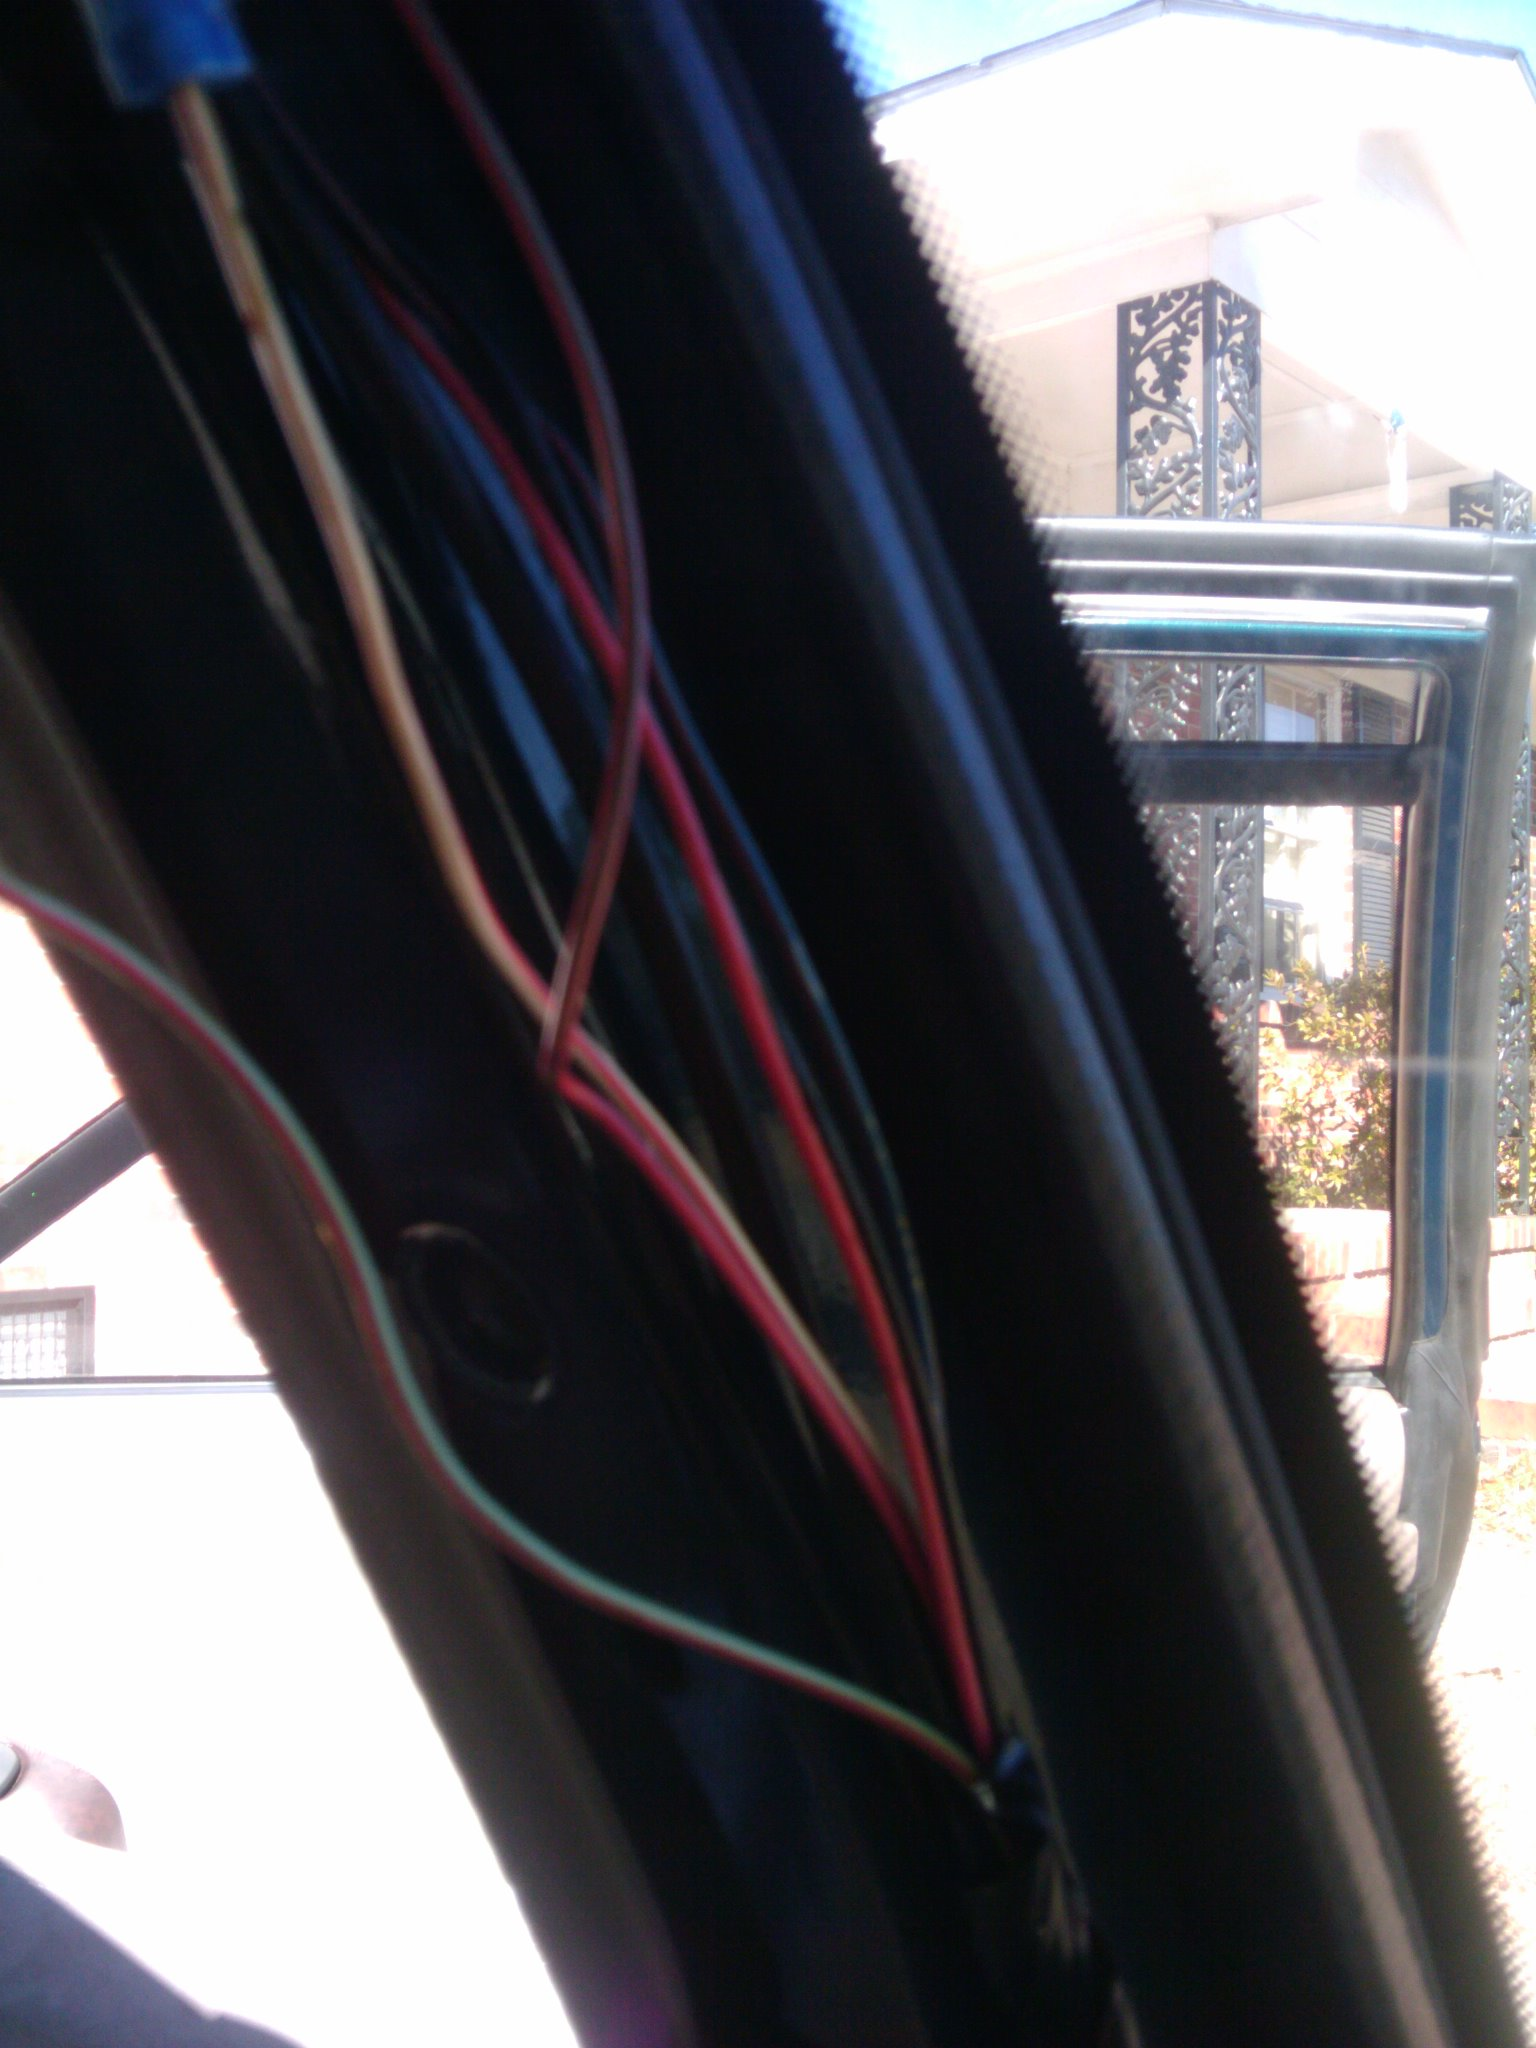 fix to losing clock a c cig lighter and mirrors the subaru svx note you need to do this on both sides although the wiring diagram suggest only the one wire is for both sides i learned clearly this is not true